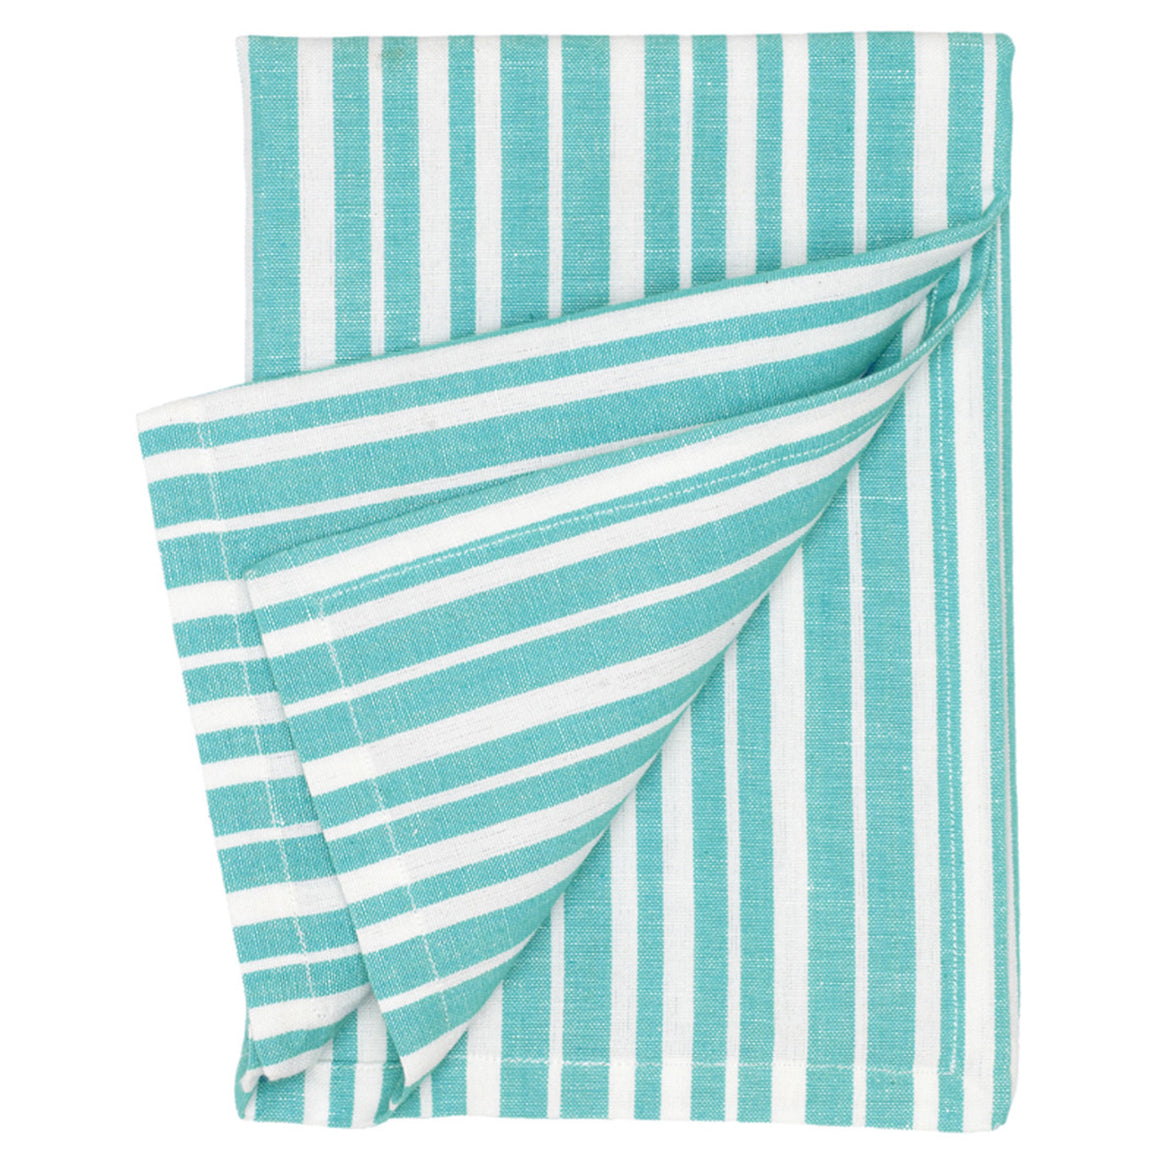 Palermo Ticking Stripe Cotton Linen Napkin in Turquoise Blue